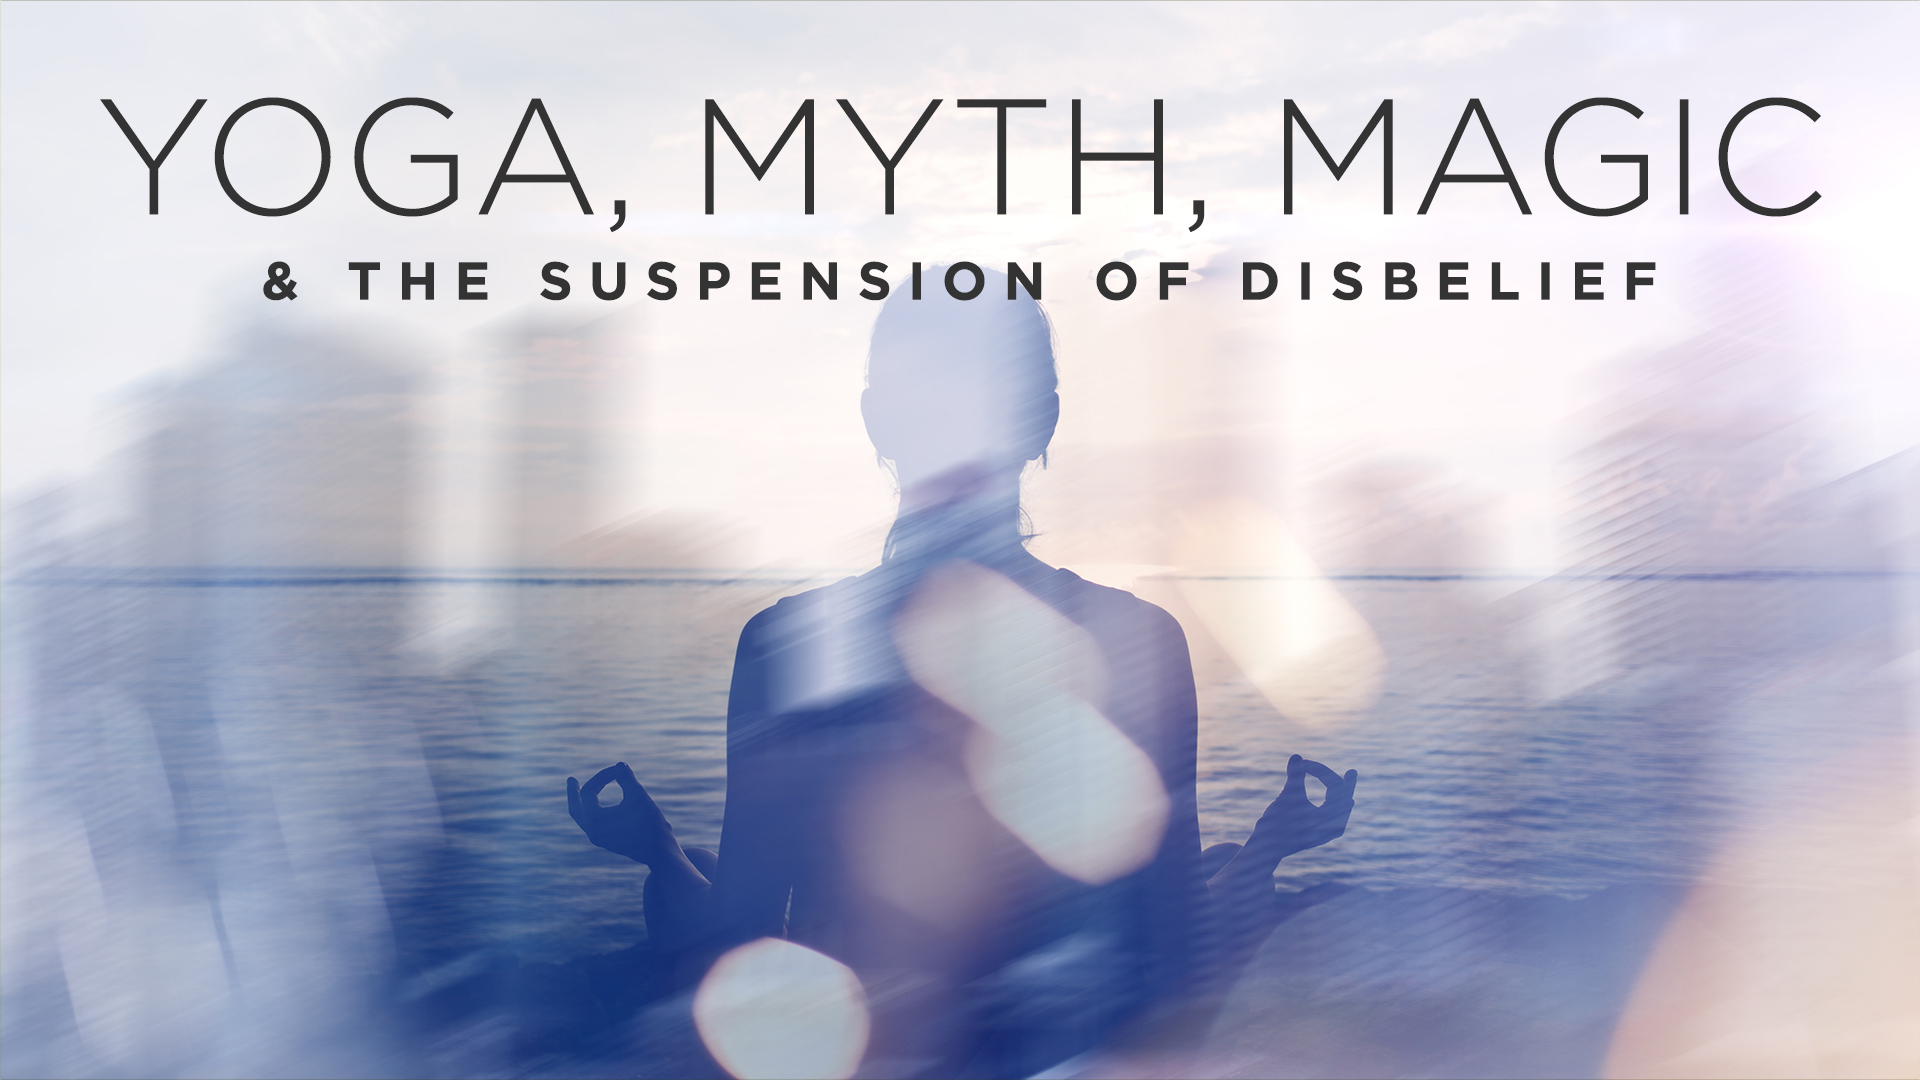 Yoga, Myth, Magic, and the Suspension of Disbelief